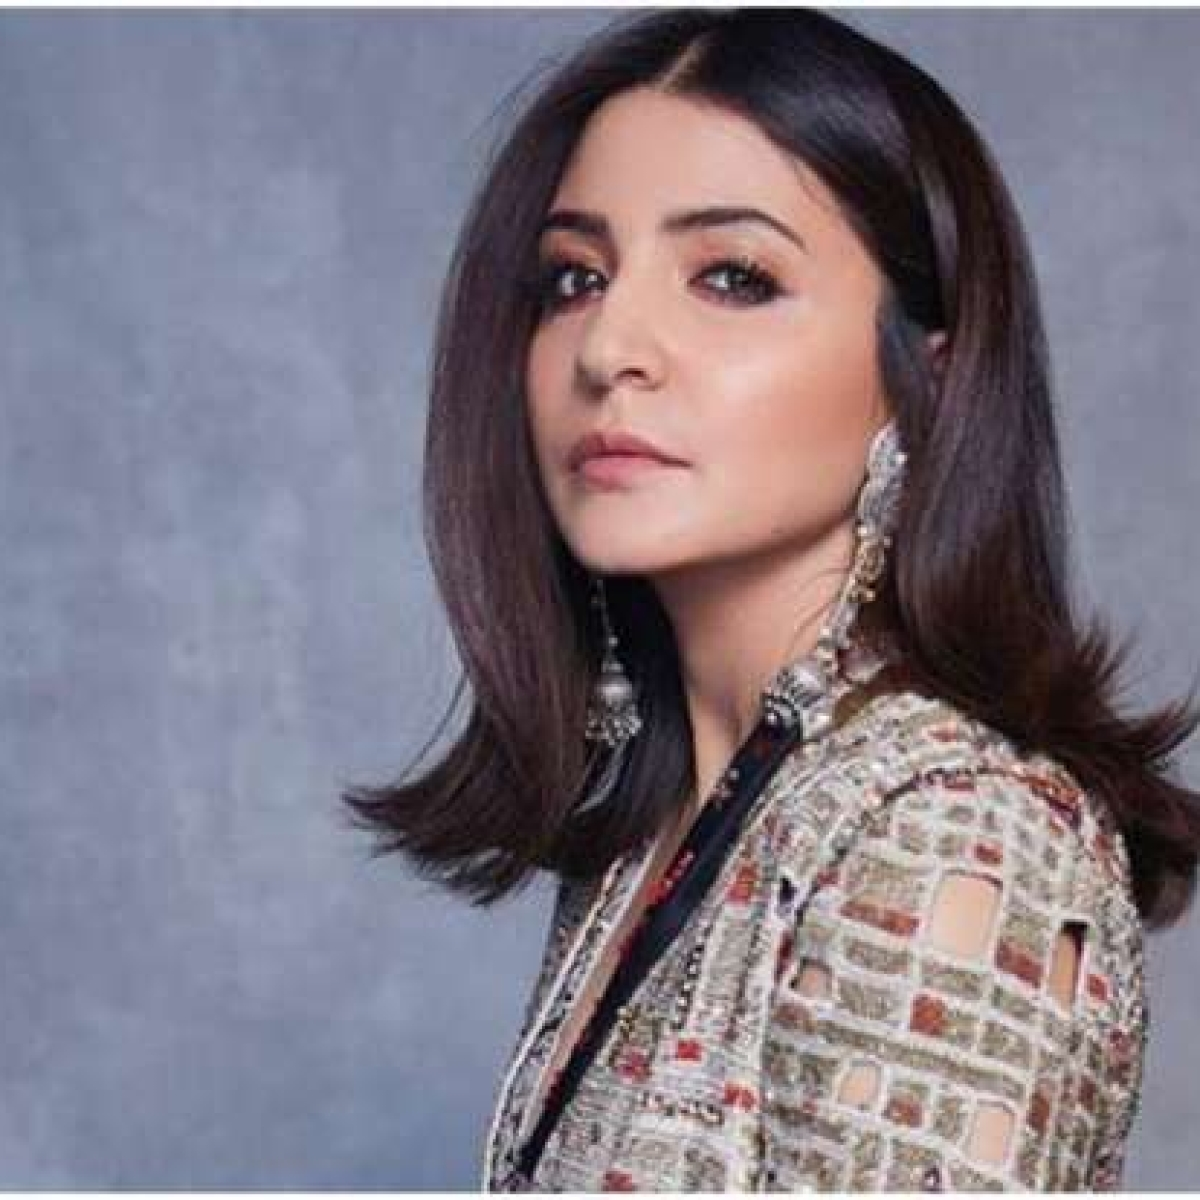 Always wanted to show strong, independent women through cinema: Anushka Sharma on 'Bulbbul'